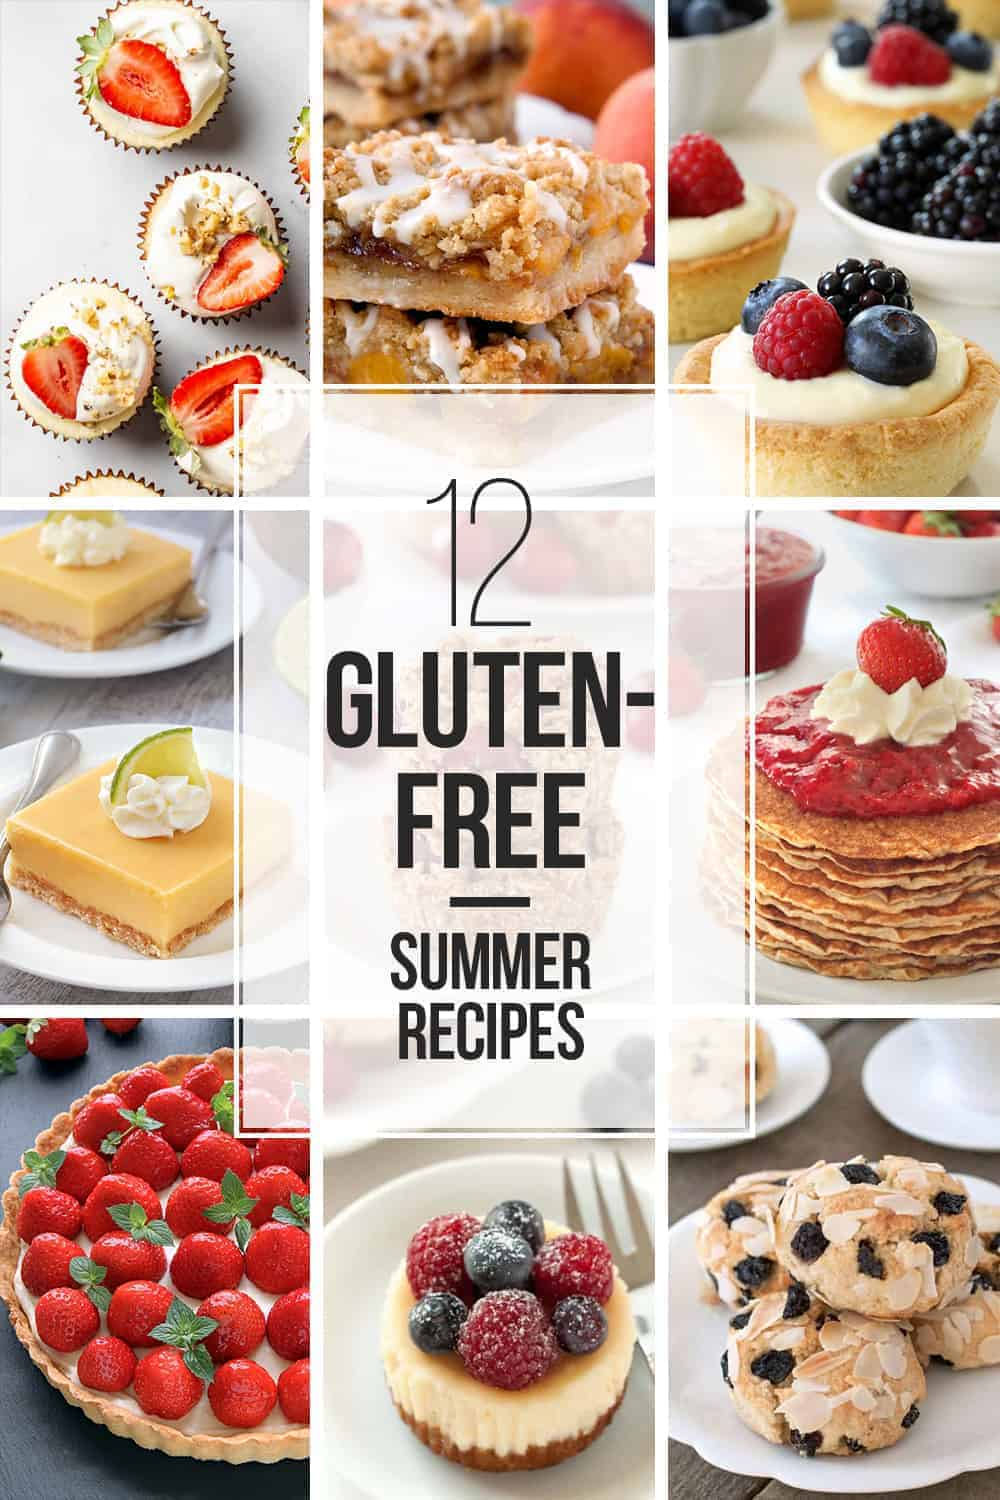 12 Gluten-Free Summer Recipes